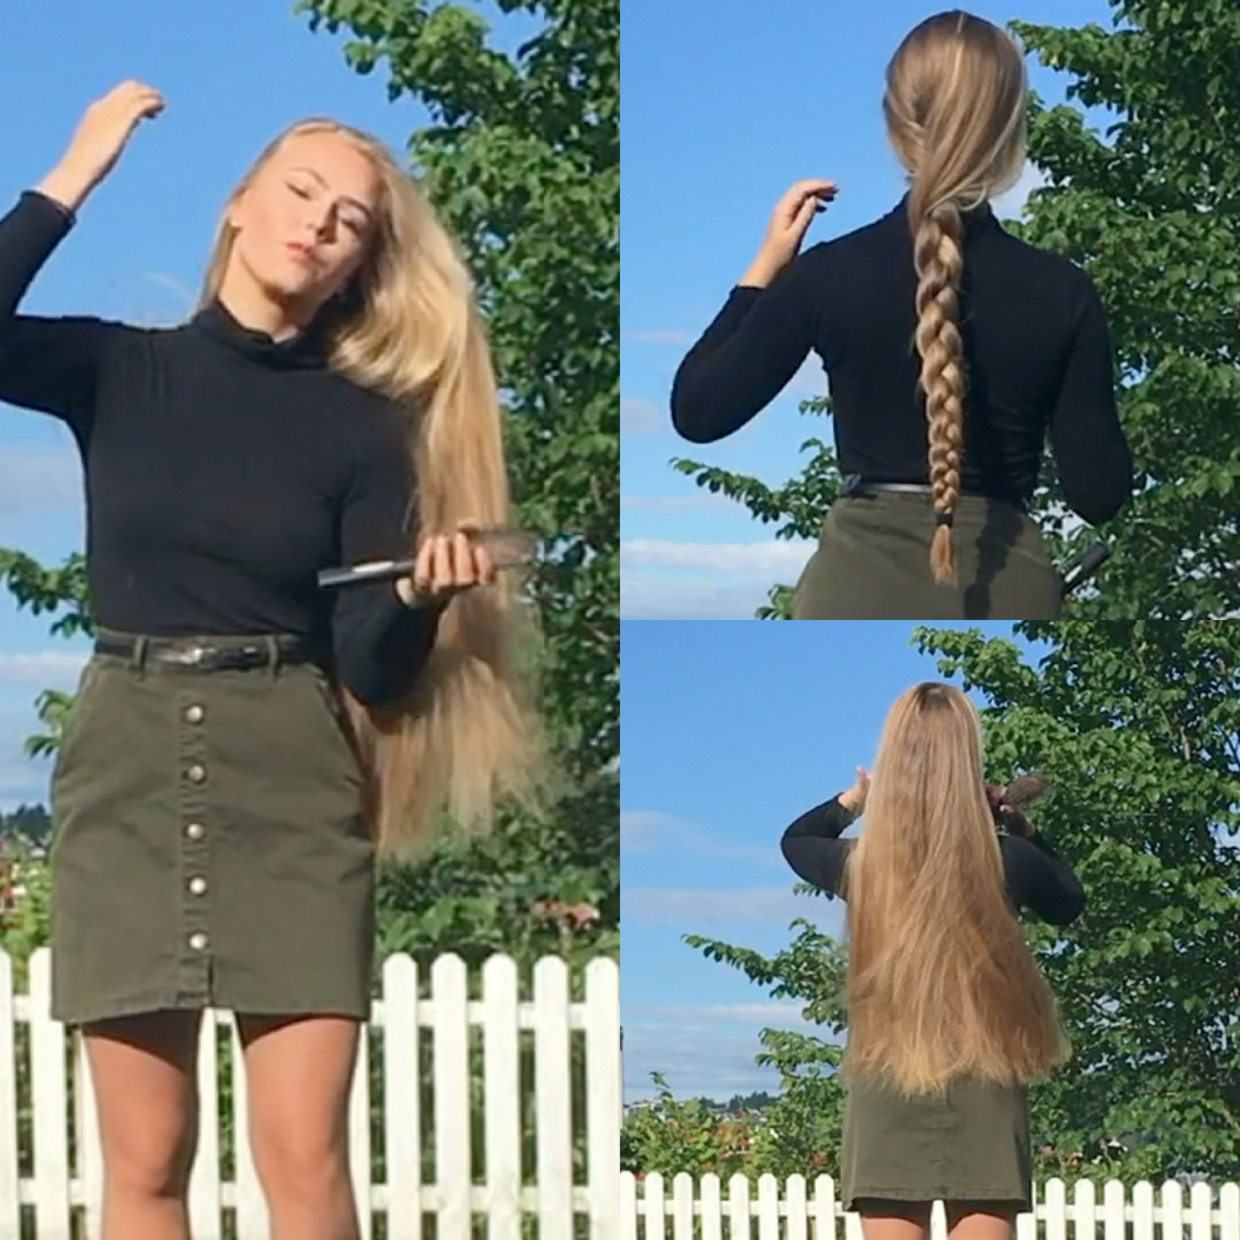 VIDEO - Norwegian blonde outside